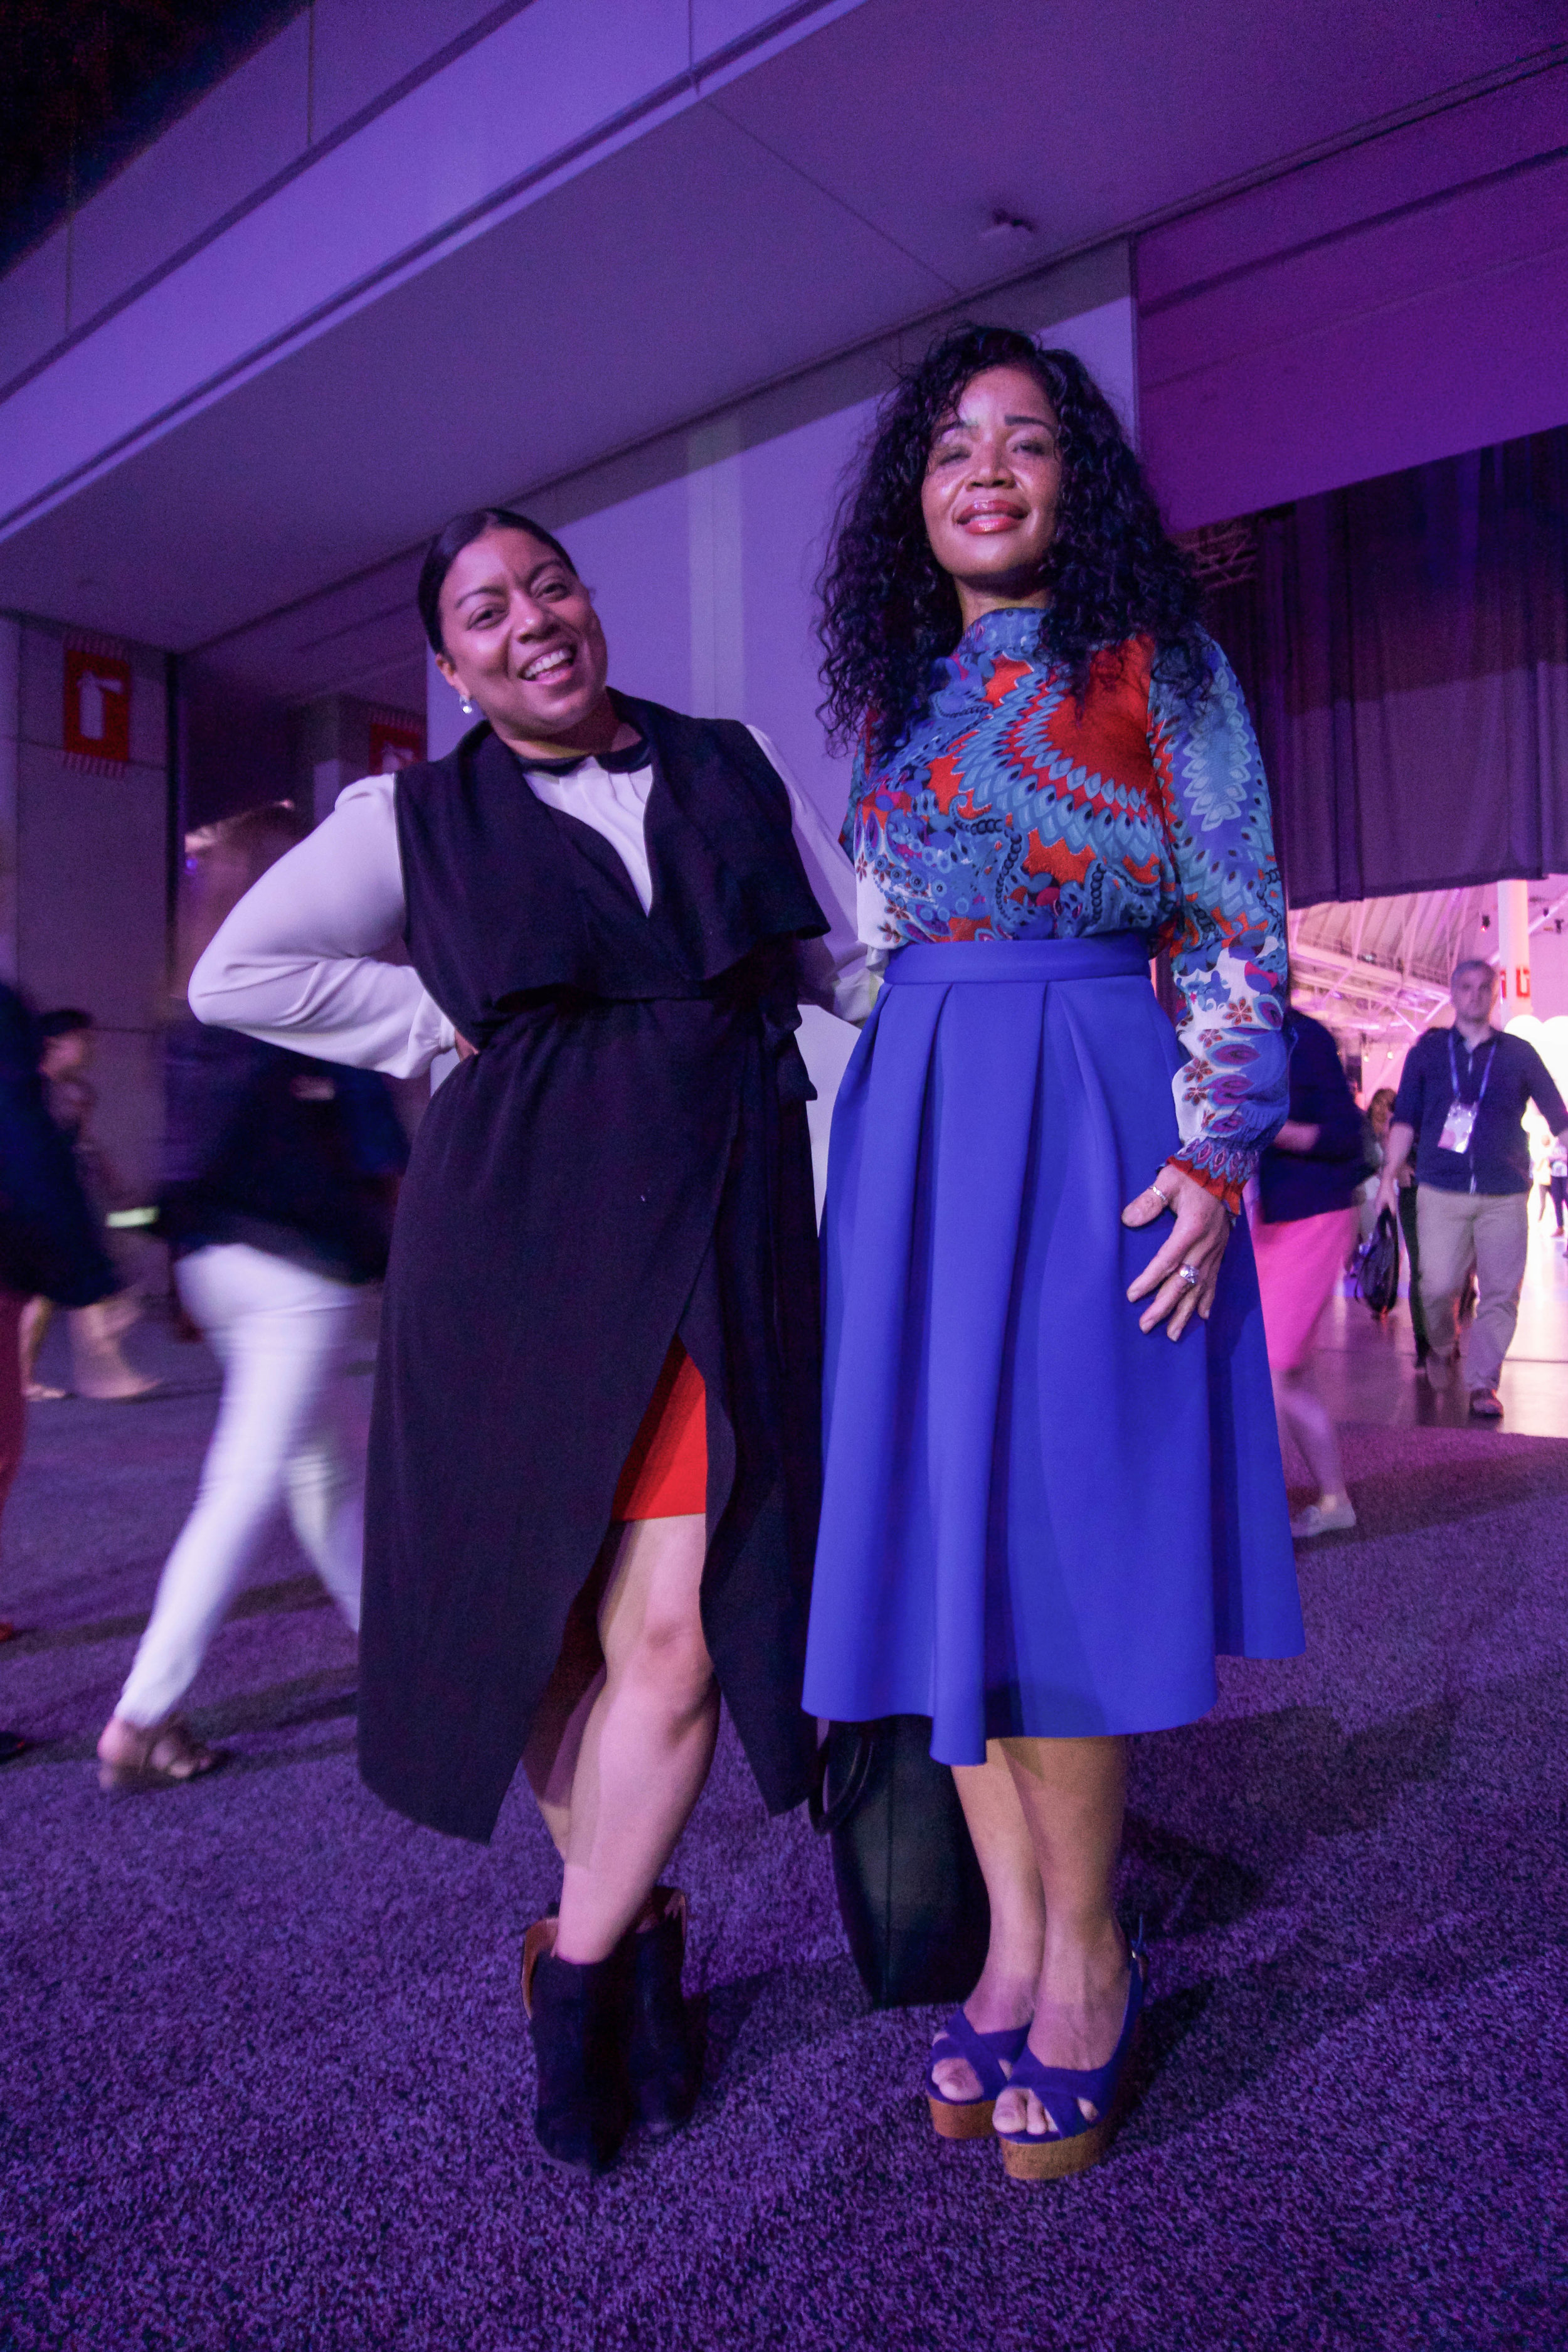 INBOUND 2017 - Hubspot Inbound marketing conference - outfit - what to wear - boston convention center - skirt - blue suede shoes - chic